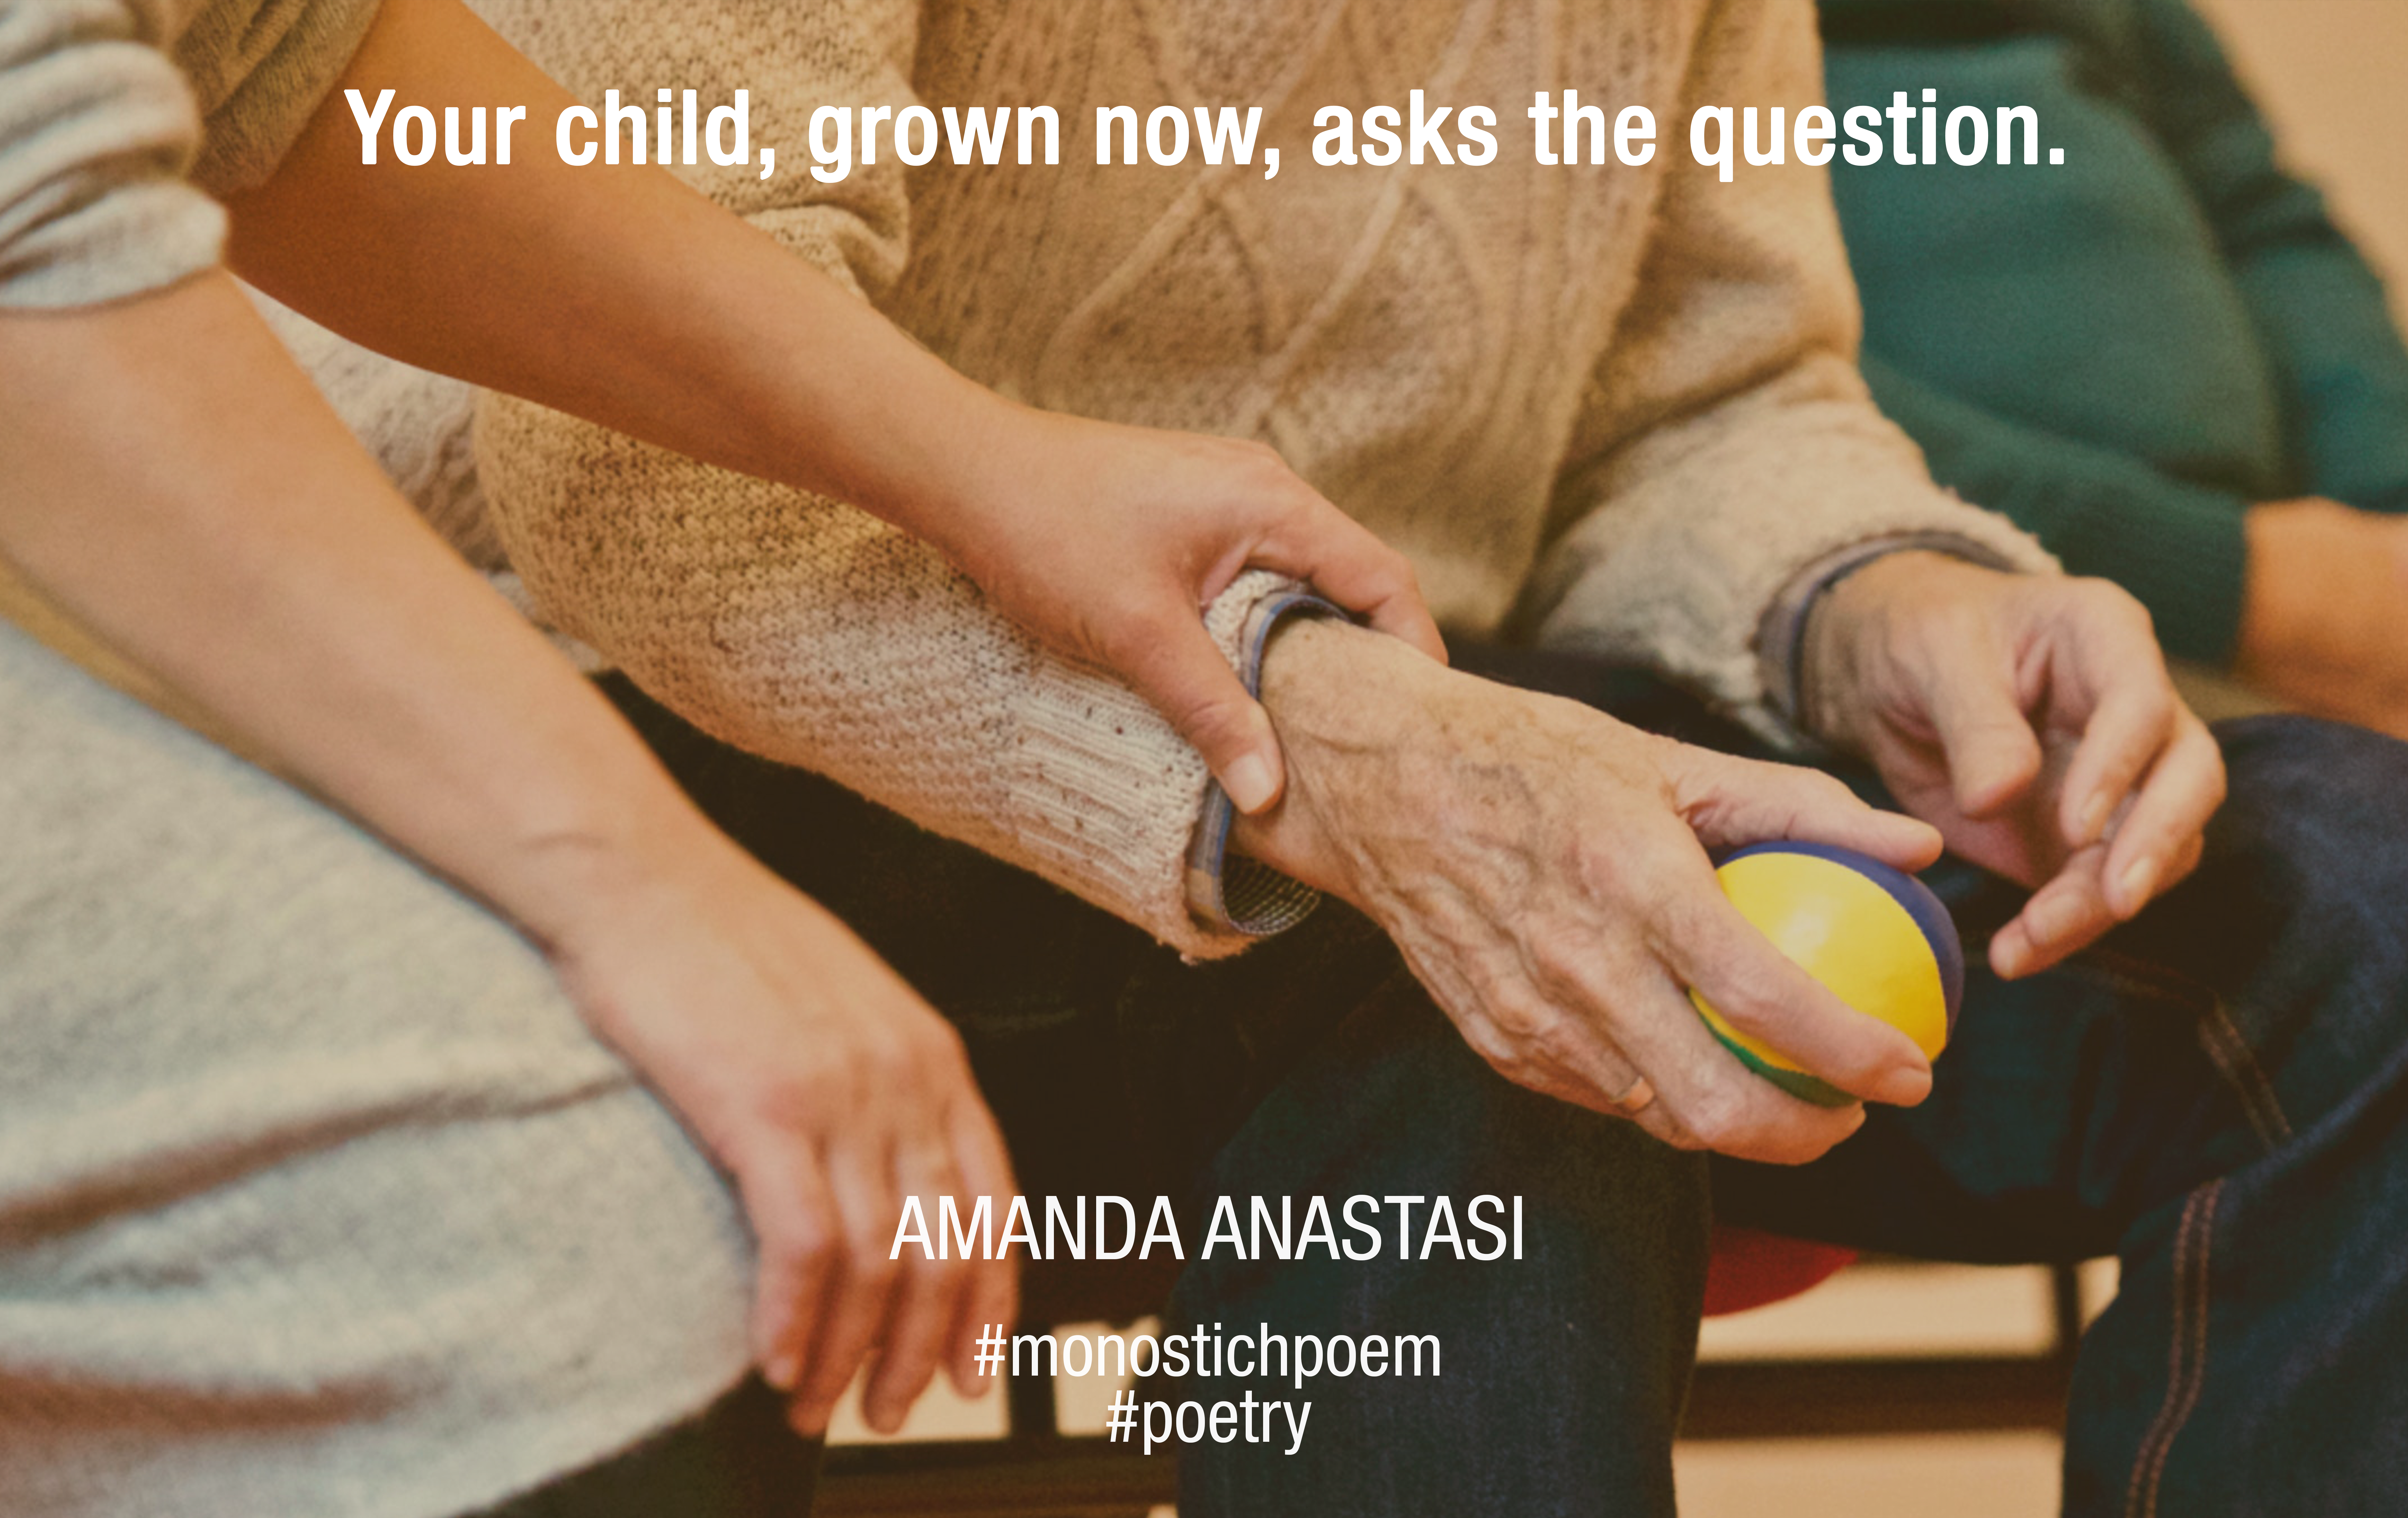 Your child, grown now, asks the question.